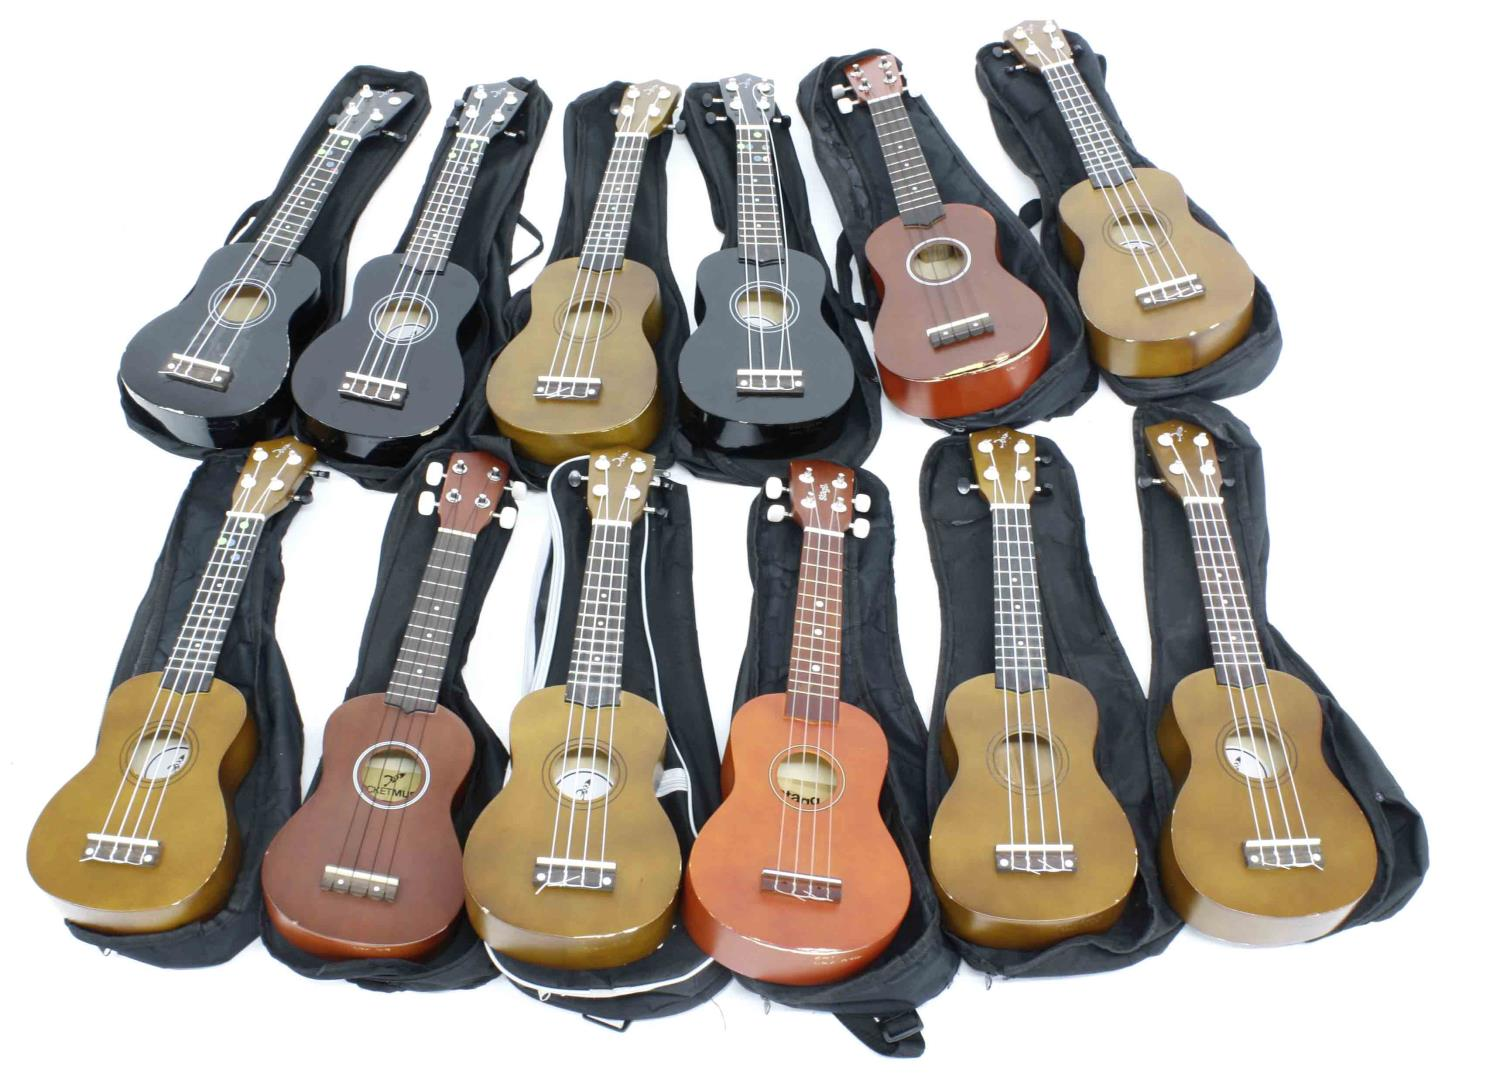 Twelve contemporary ex-student played ukuleles in variable condition, all in soft bags (12) *This